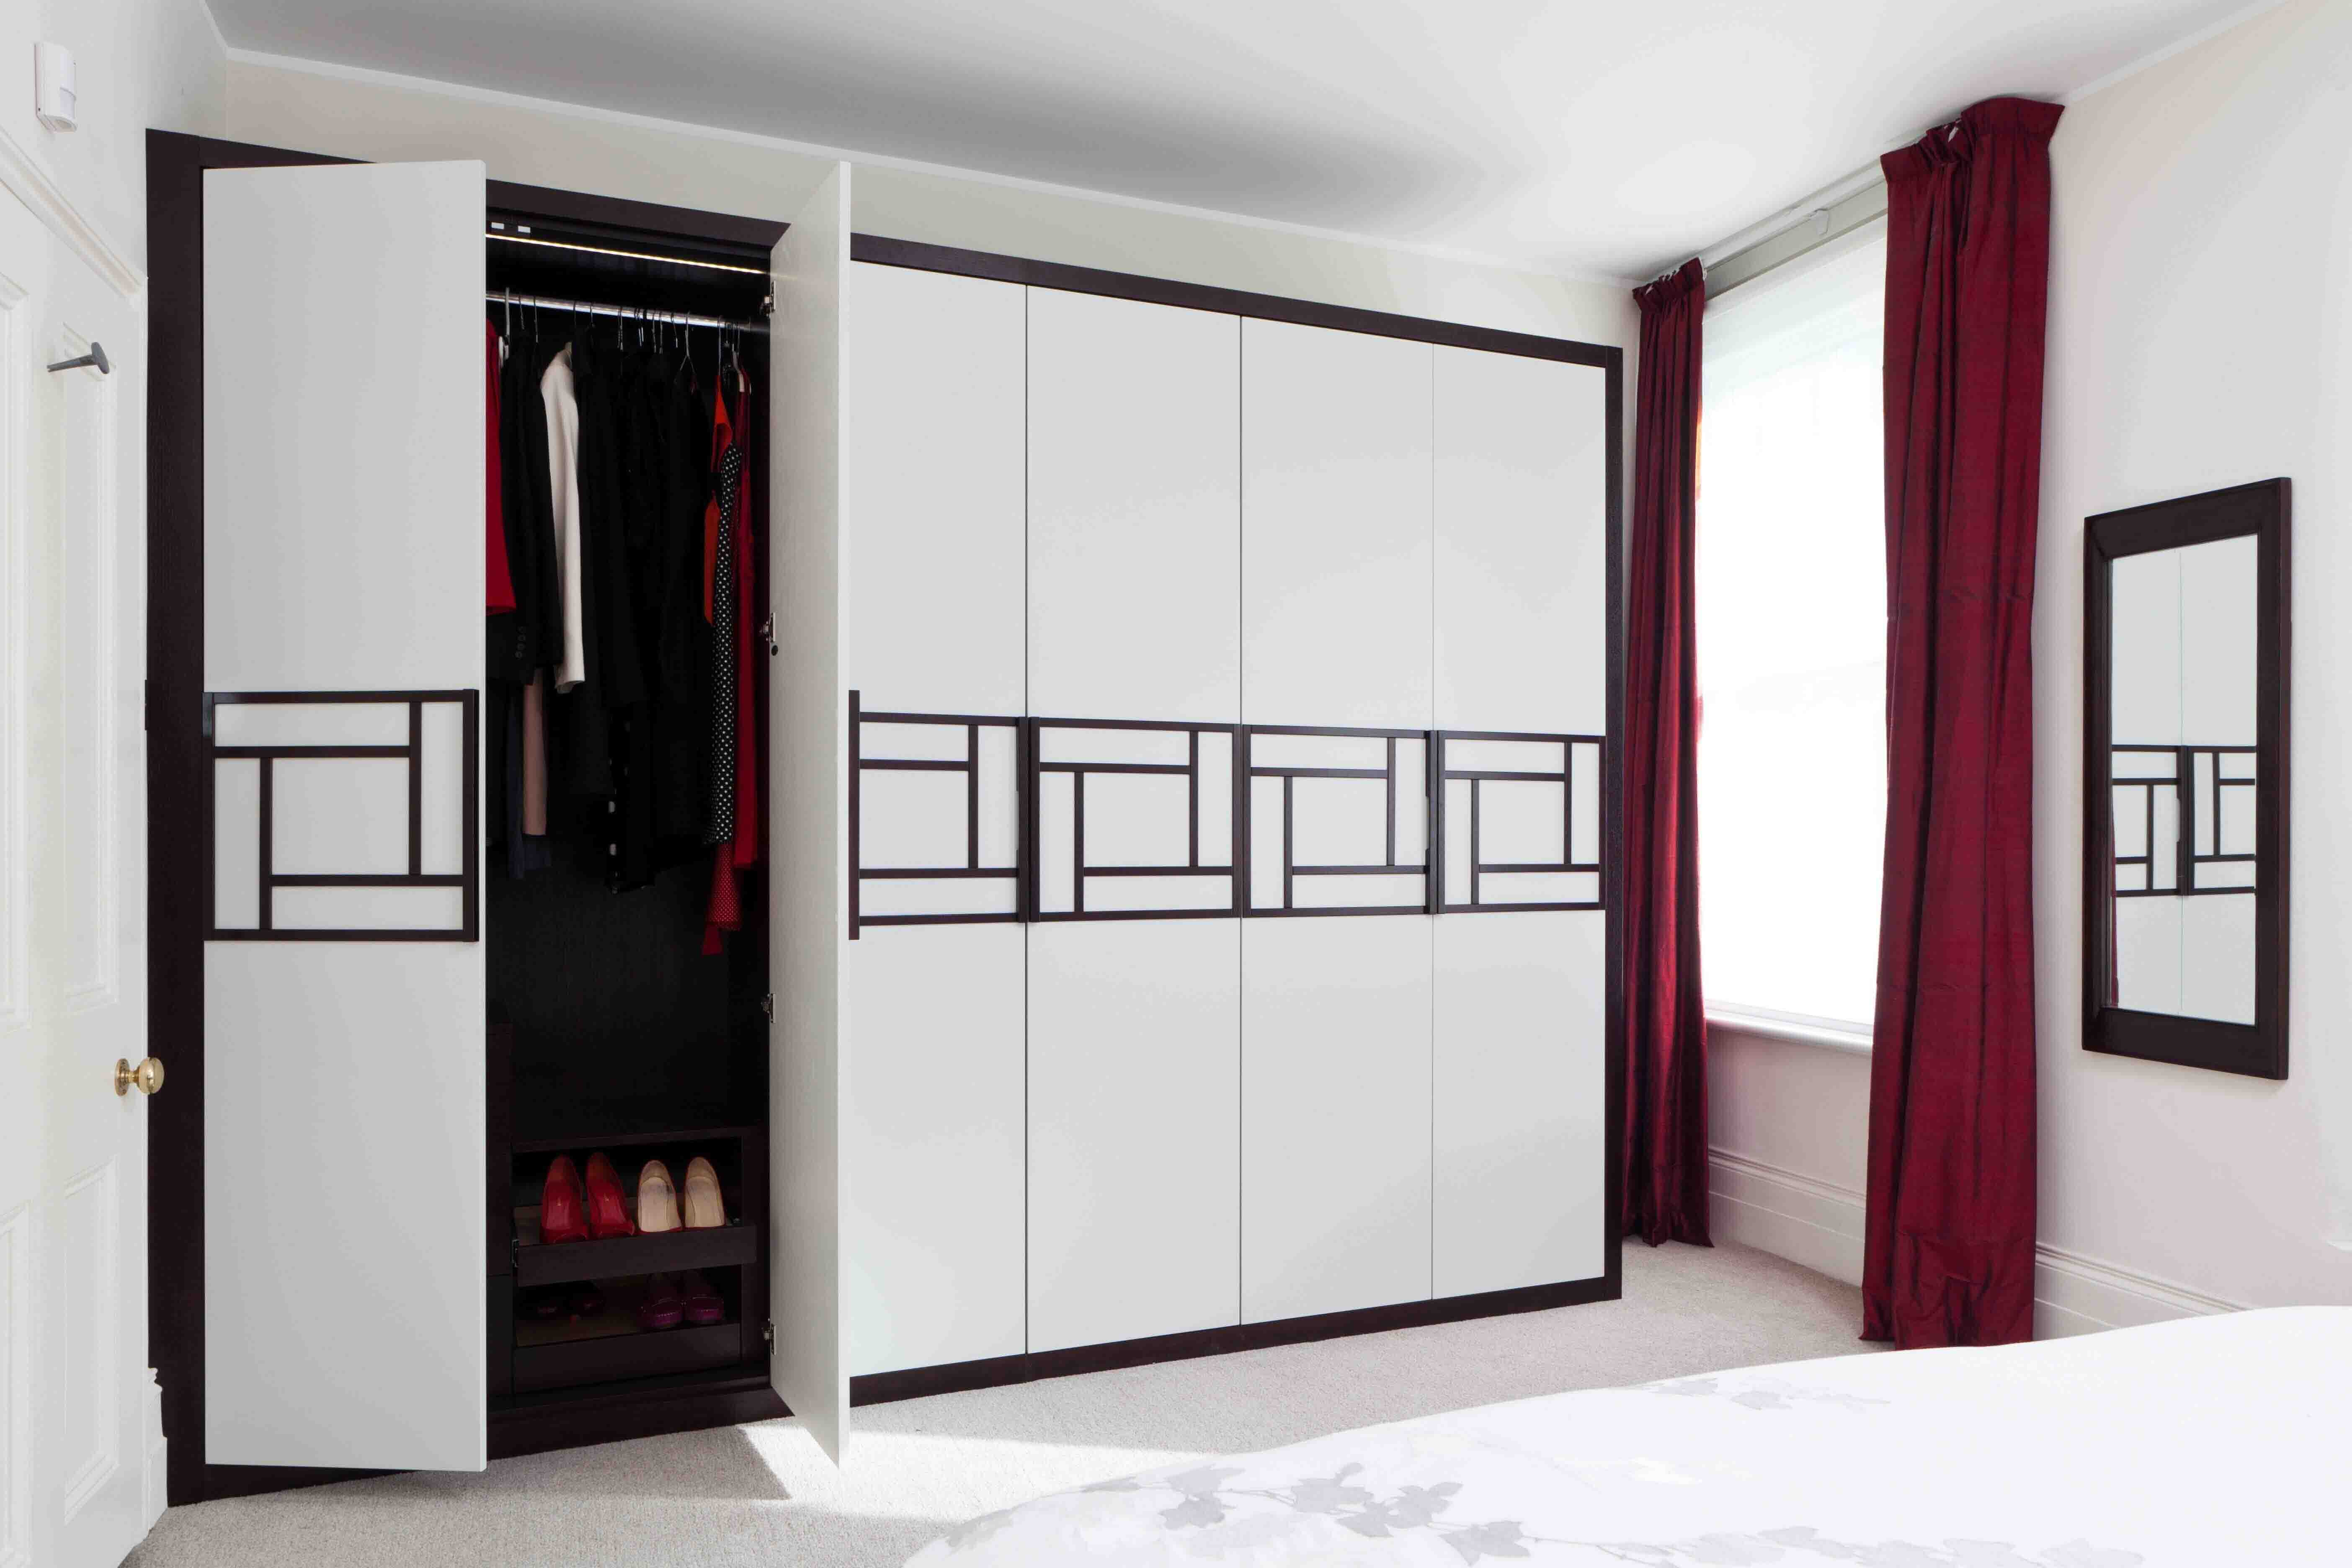 STRIKING DESIGNS FOR WARDROBE